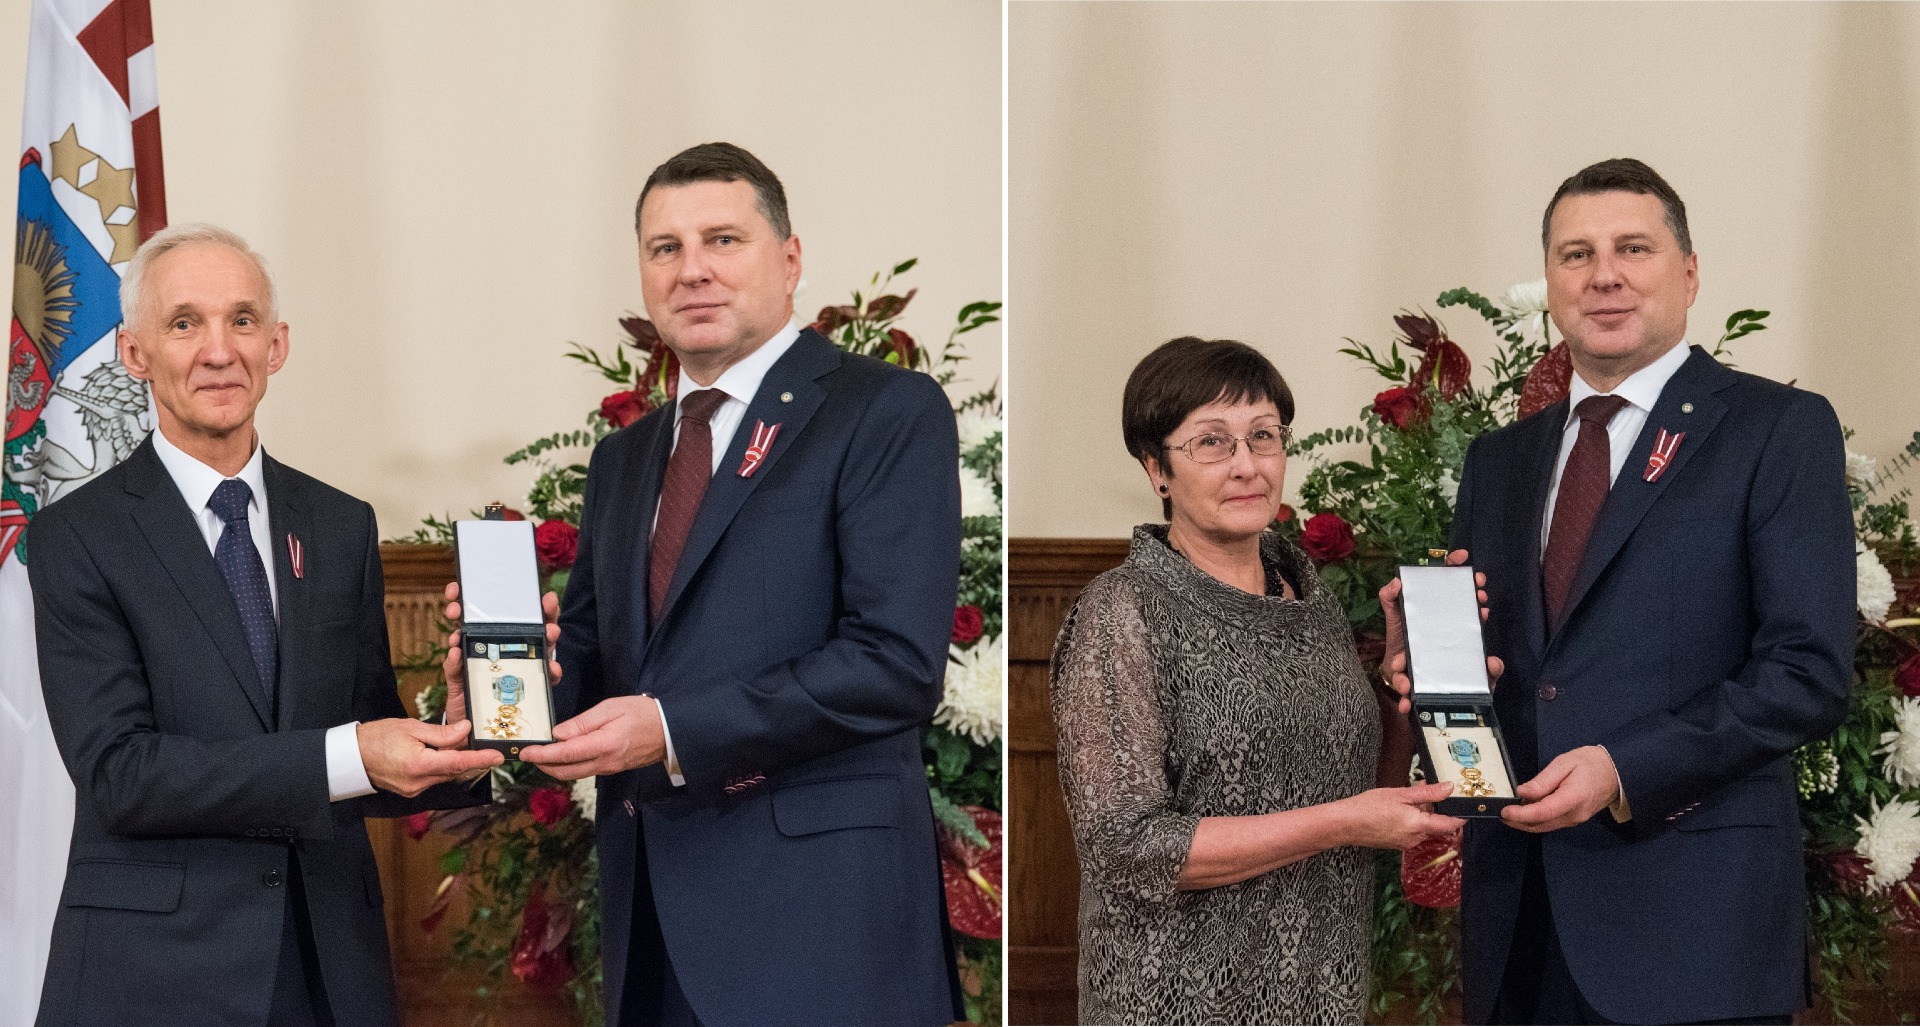 18.12.2017. On the Proclamation Day of the Republic of Latvia, November 18, Valerijans Jonikans, Judge of the Department of Civil Cases of the Supreme Court, and Ilze Skultane, Judge of the Department of Administrative Cases, received the highest state awards at the ceremony that took place at the Riga Castle. The judges were awarded the Order of the Three Stars, Class IV.